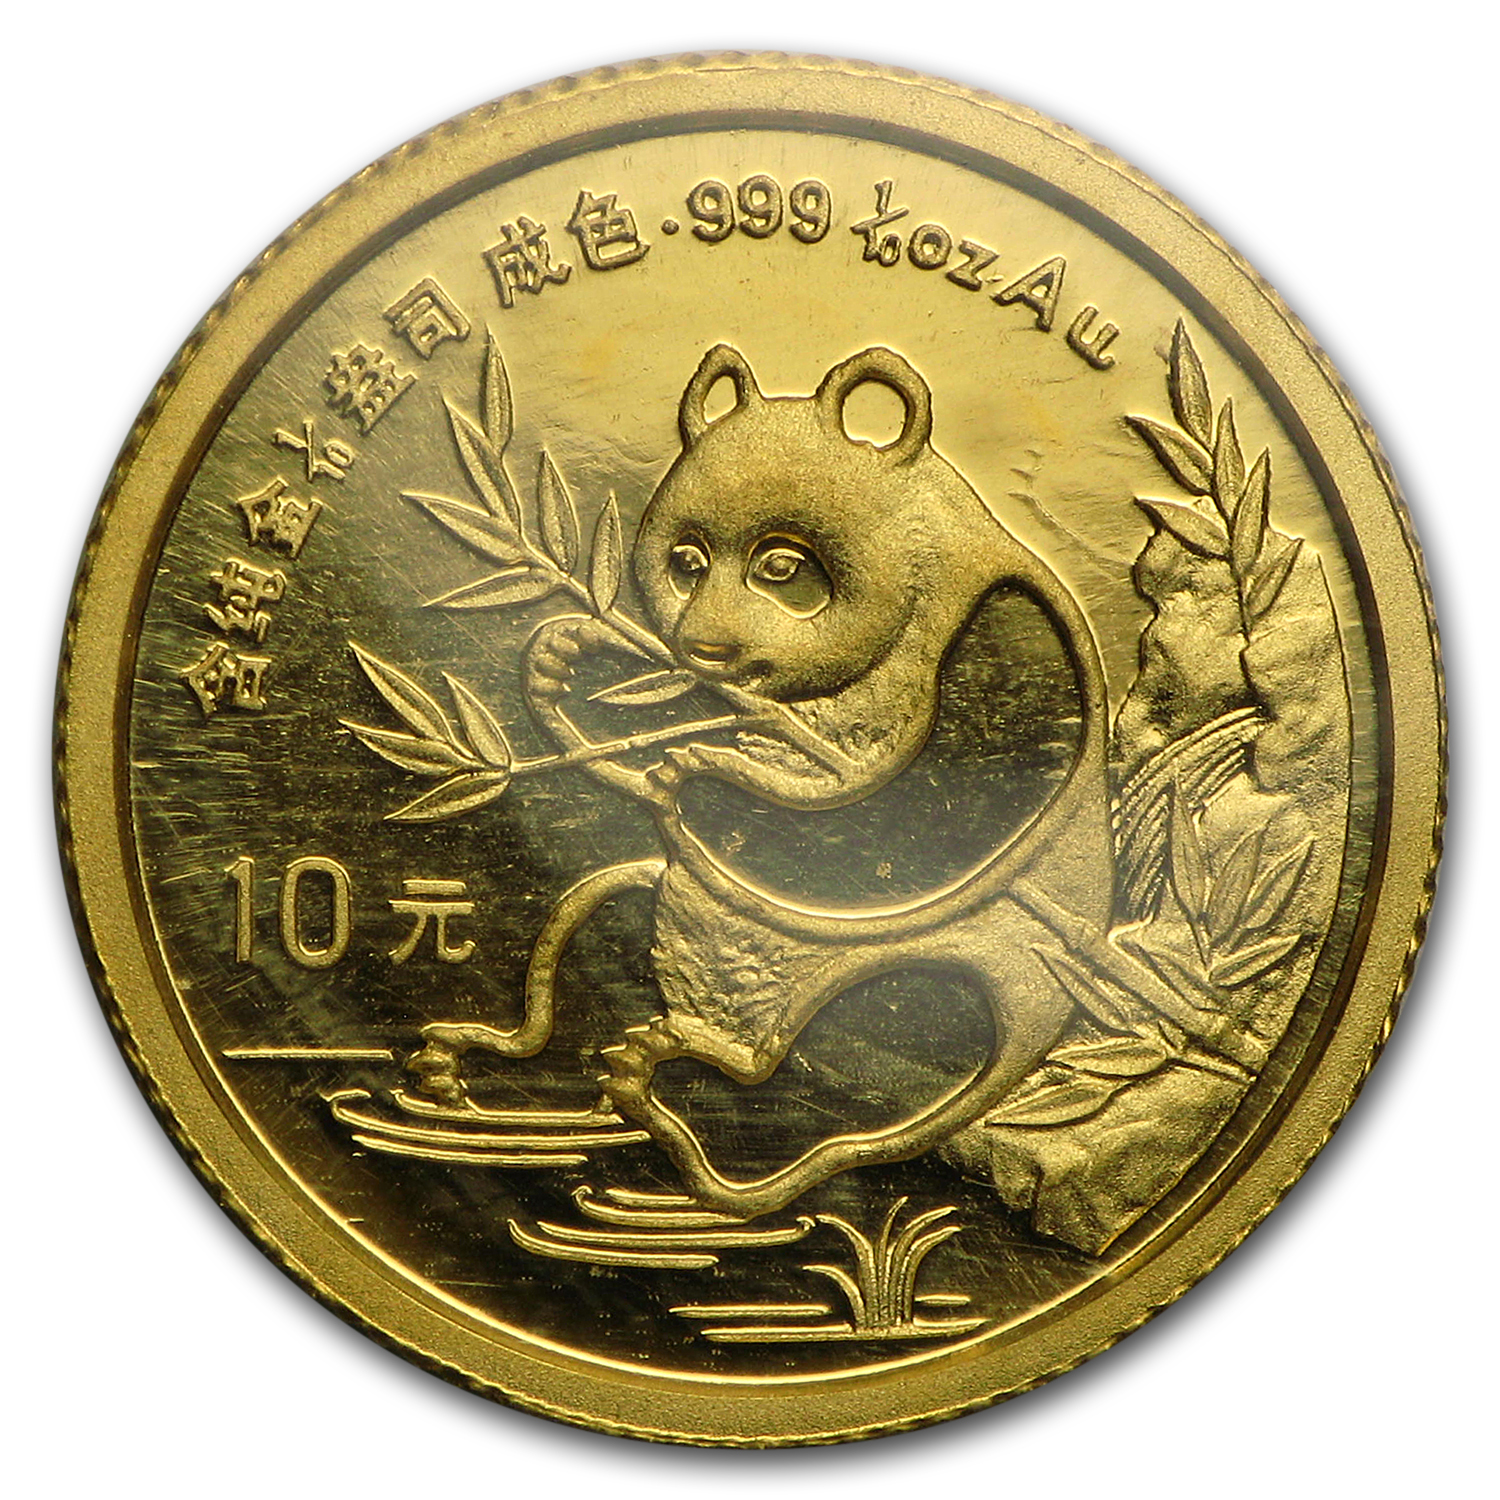 1991 China 1/10 oz Gold Panda Small Date BU (Sealed)